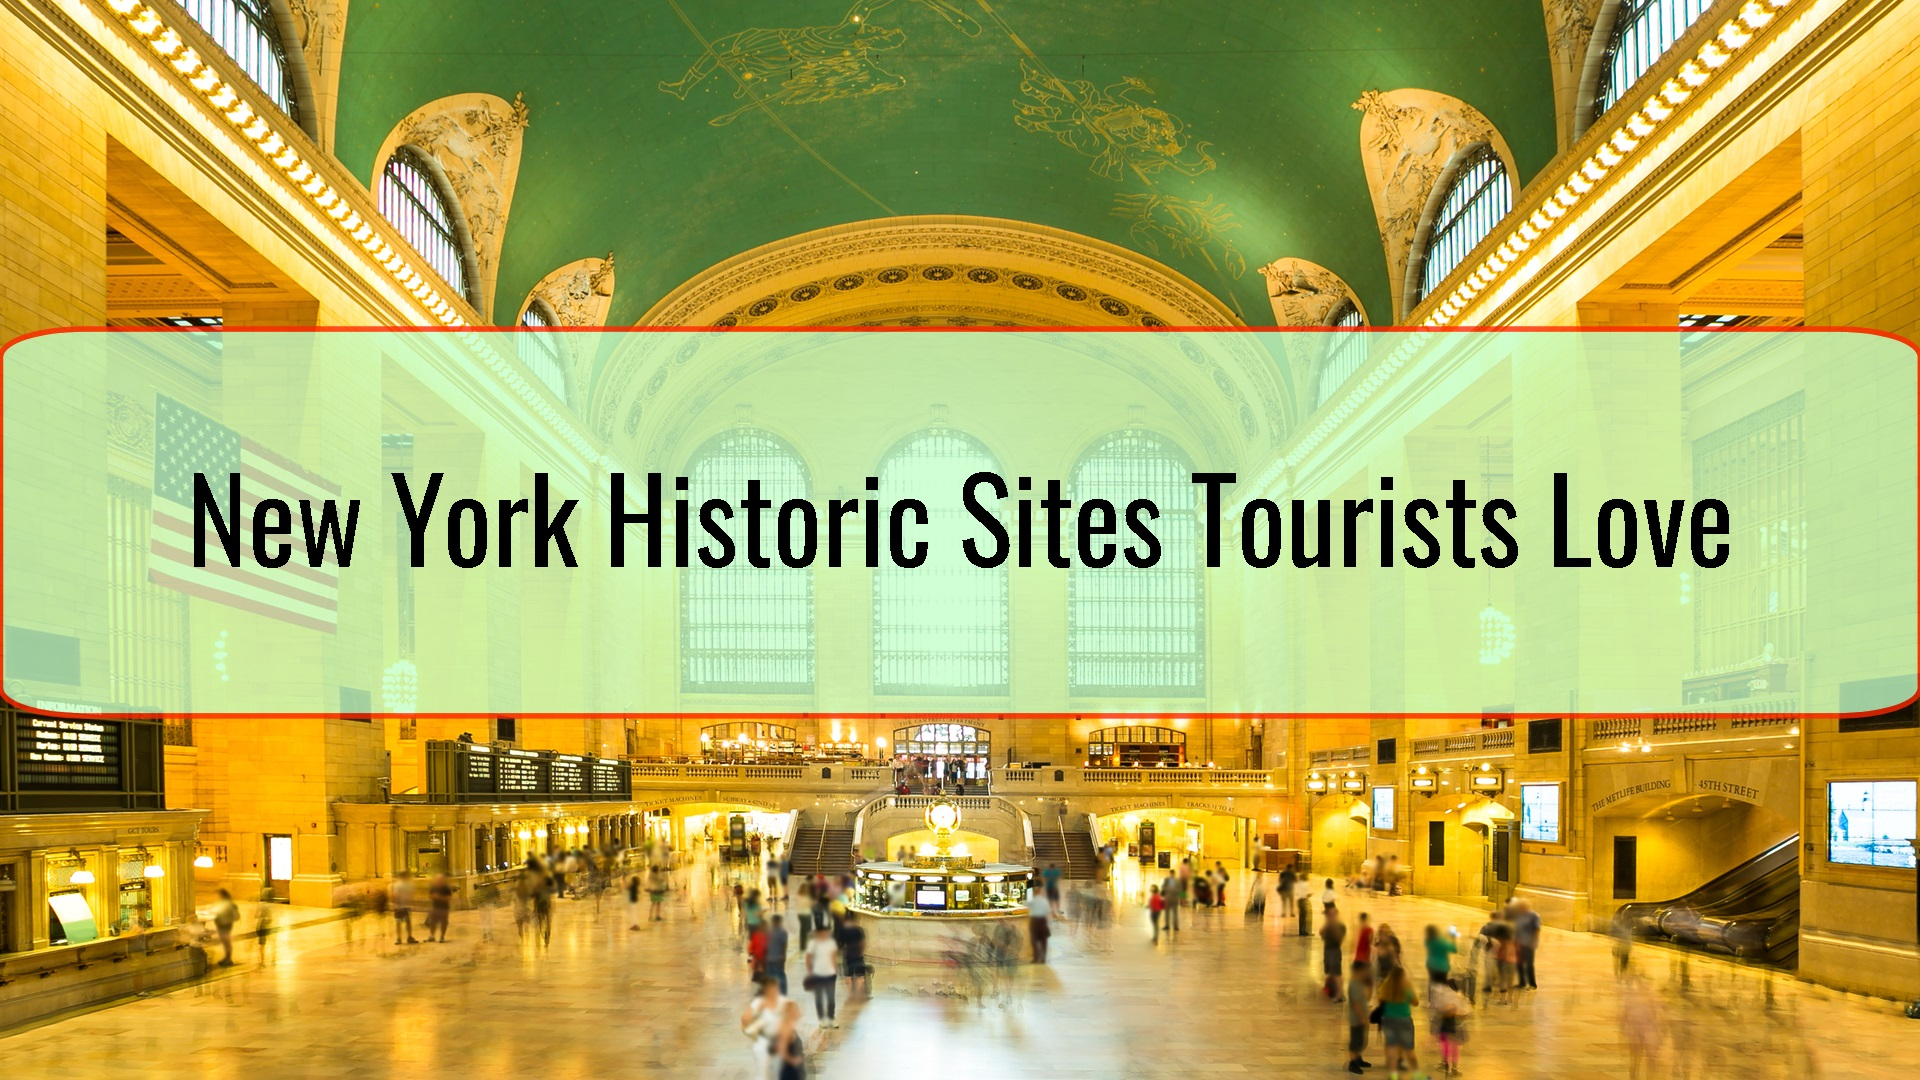 New York Historic Sites Tourists Love